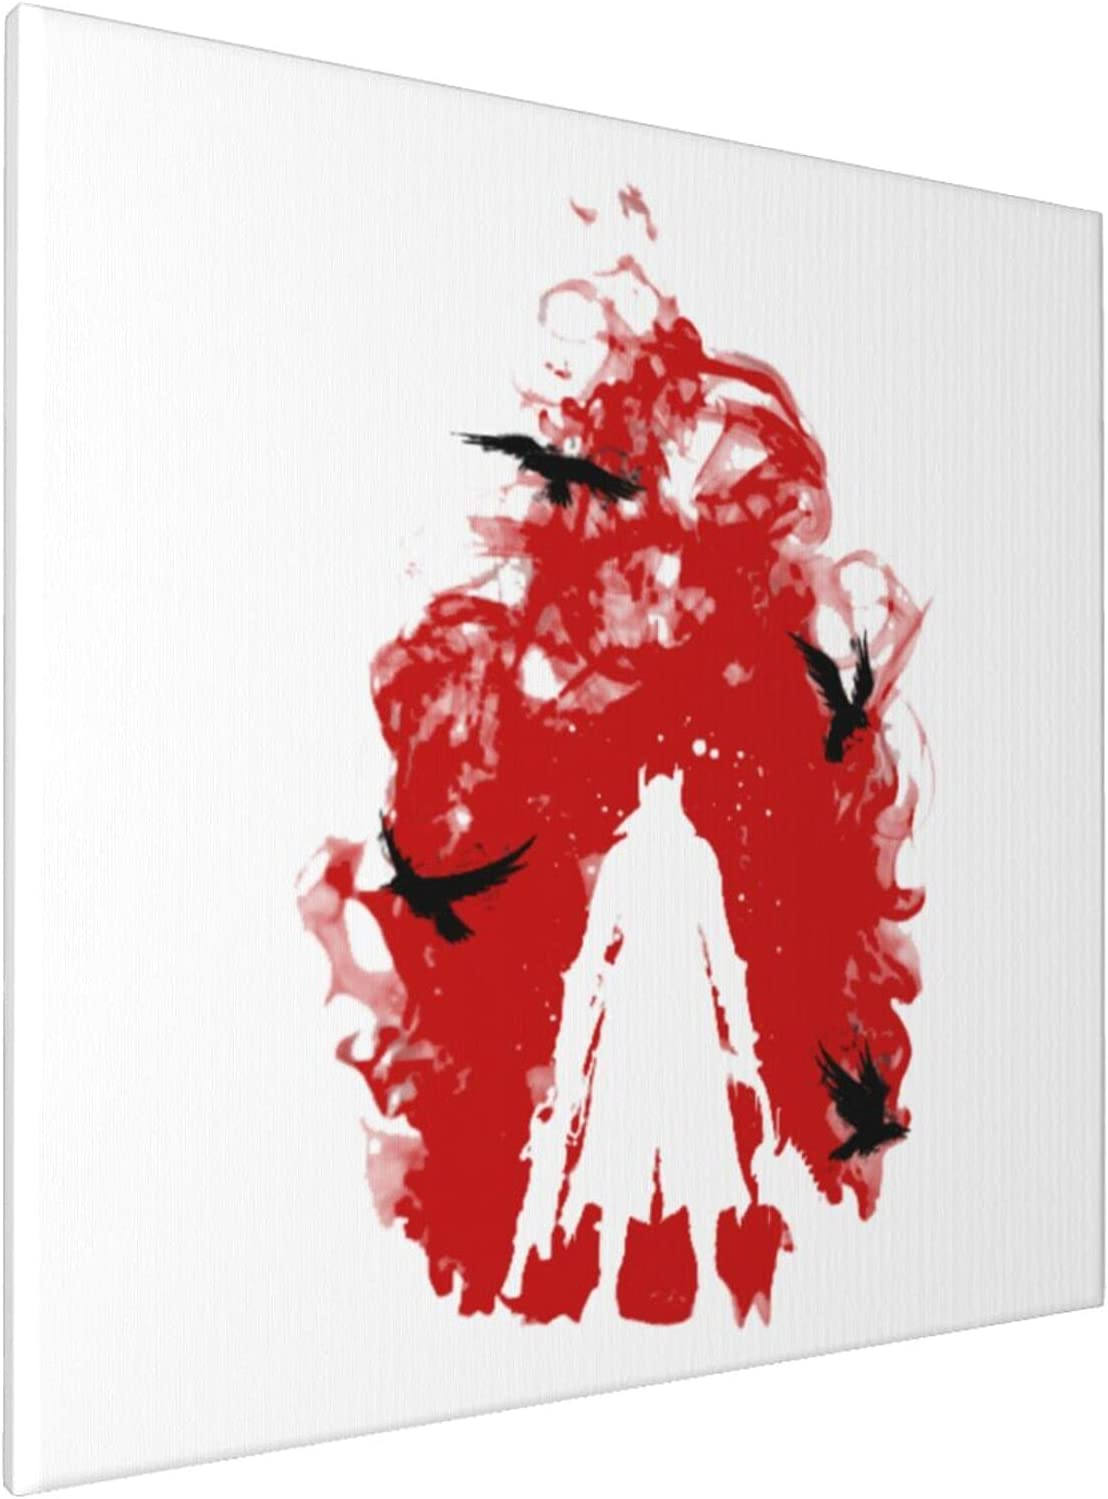 Canvas Prints Wall Art Paintings(20x20in) Bloodborne Born Blood Pictures Home Office Decor Framed Posters & Prints